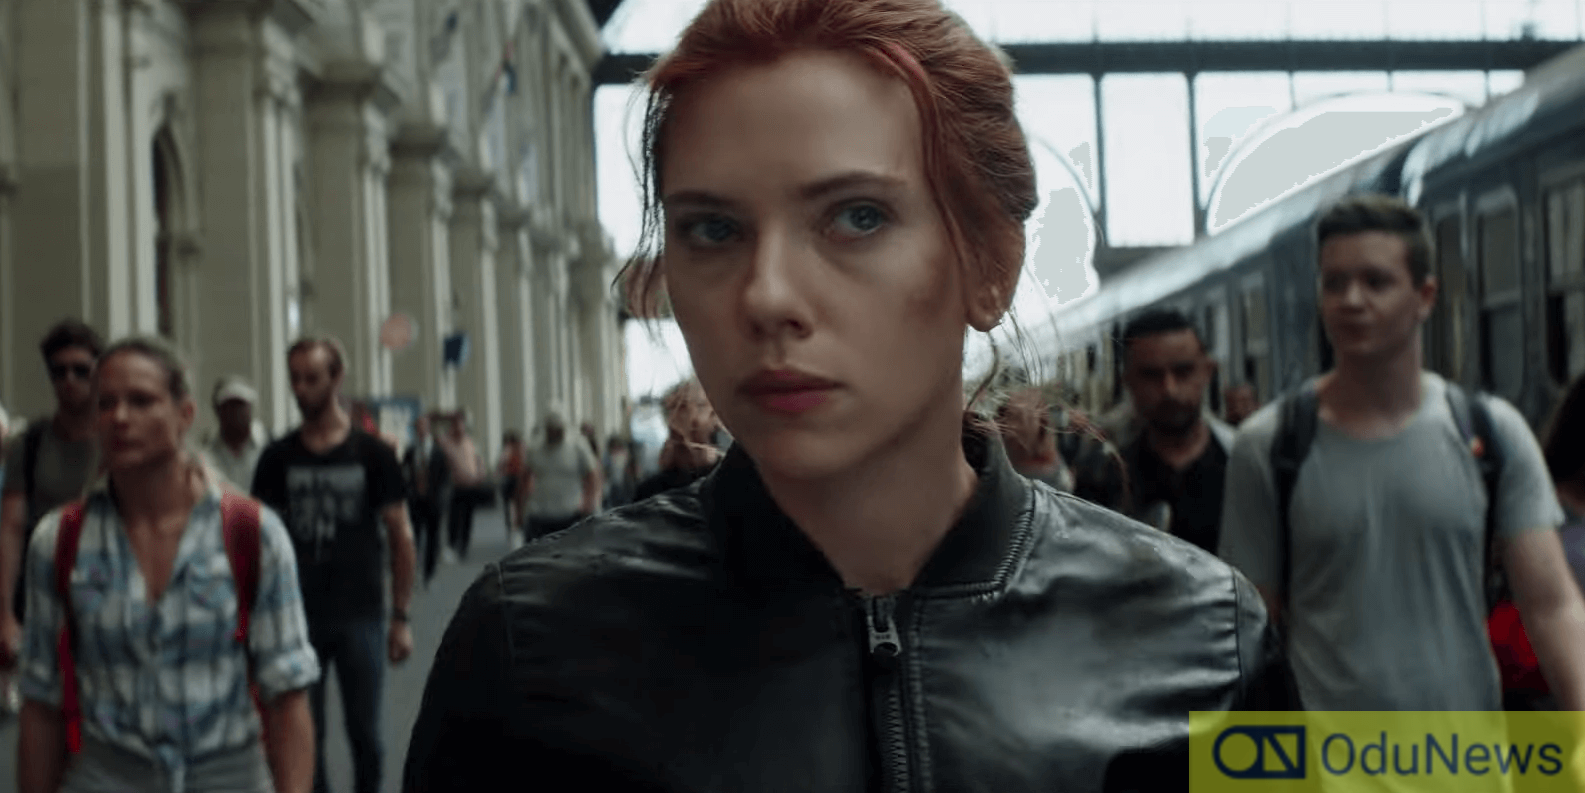 Scarlet Johansson as Natasha Romanoff in BLACK WIDOW